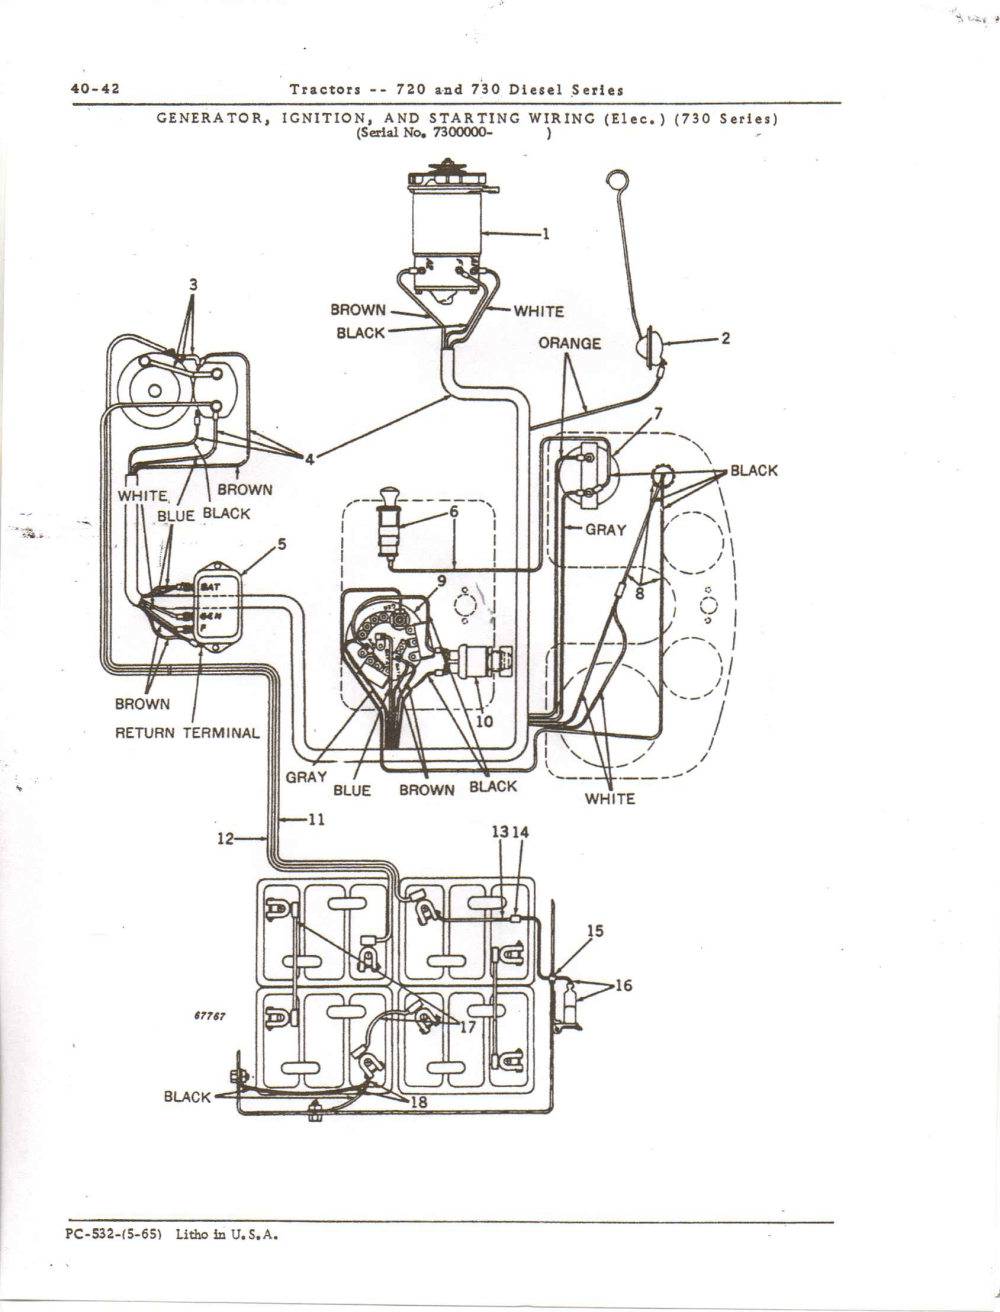 medium resolution of john deere lawn mower wiring diagram